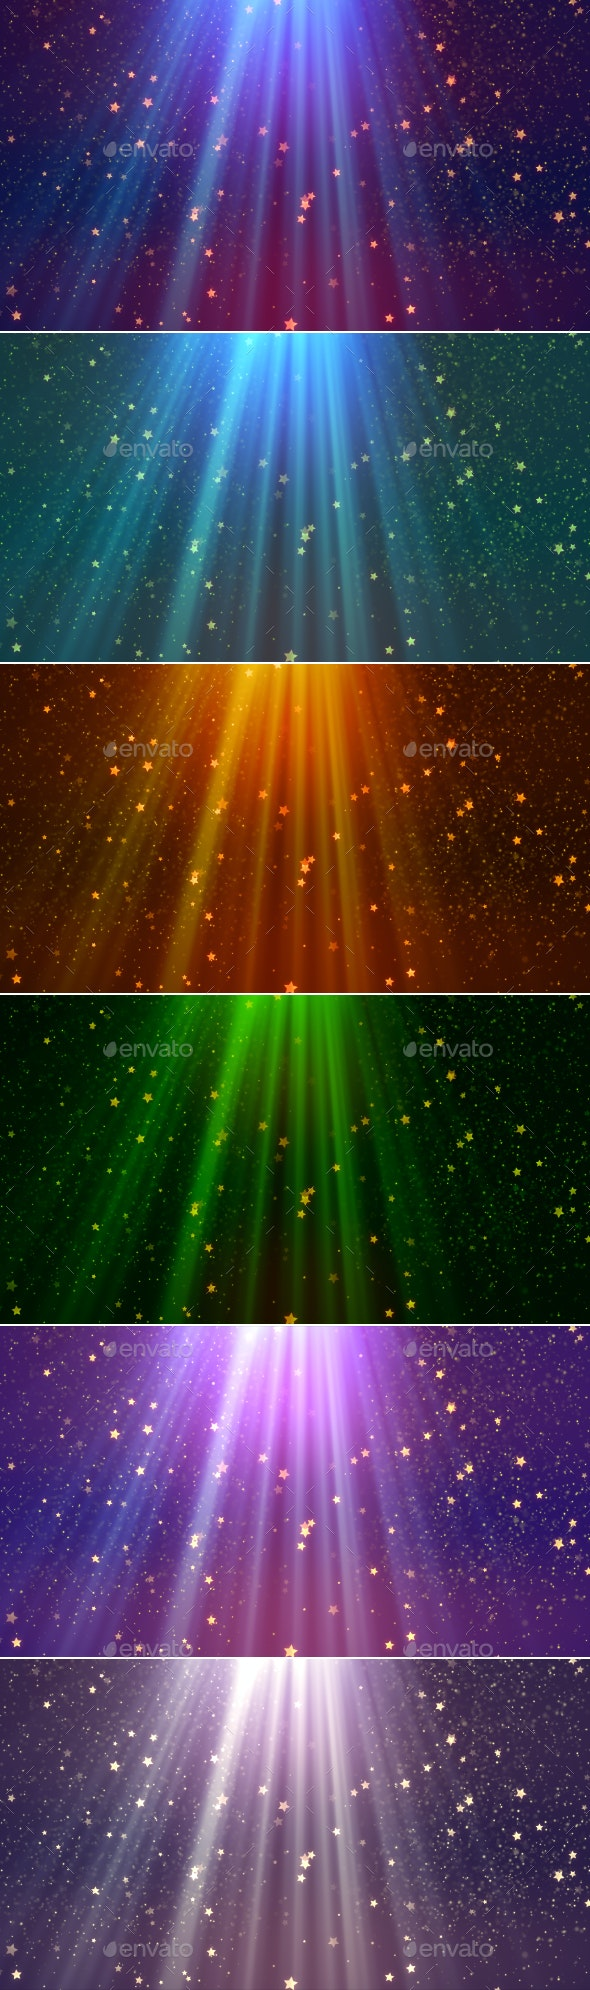 Heavenly Rays Backgrounds - Abstract Backgrounds